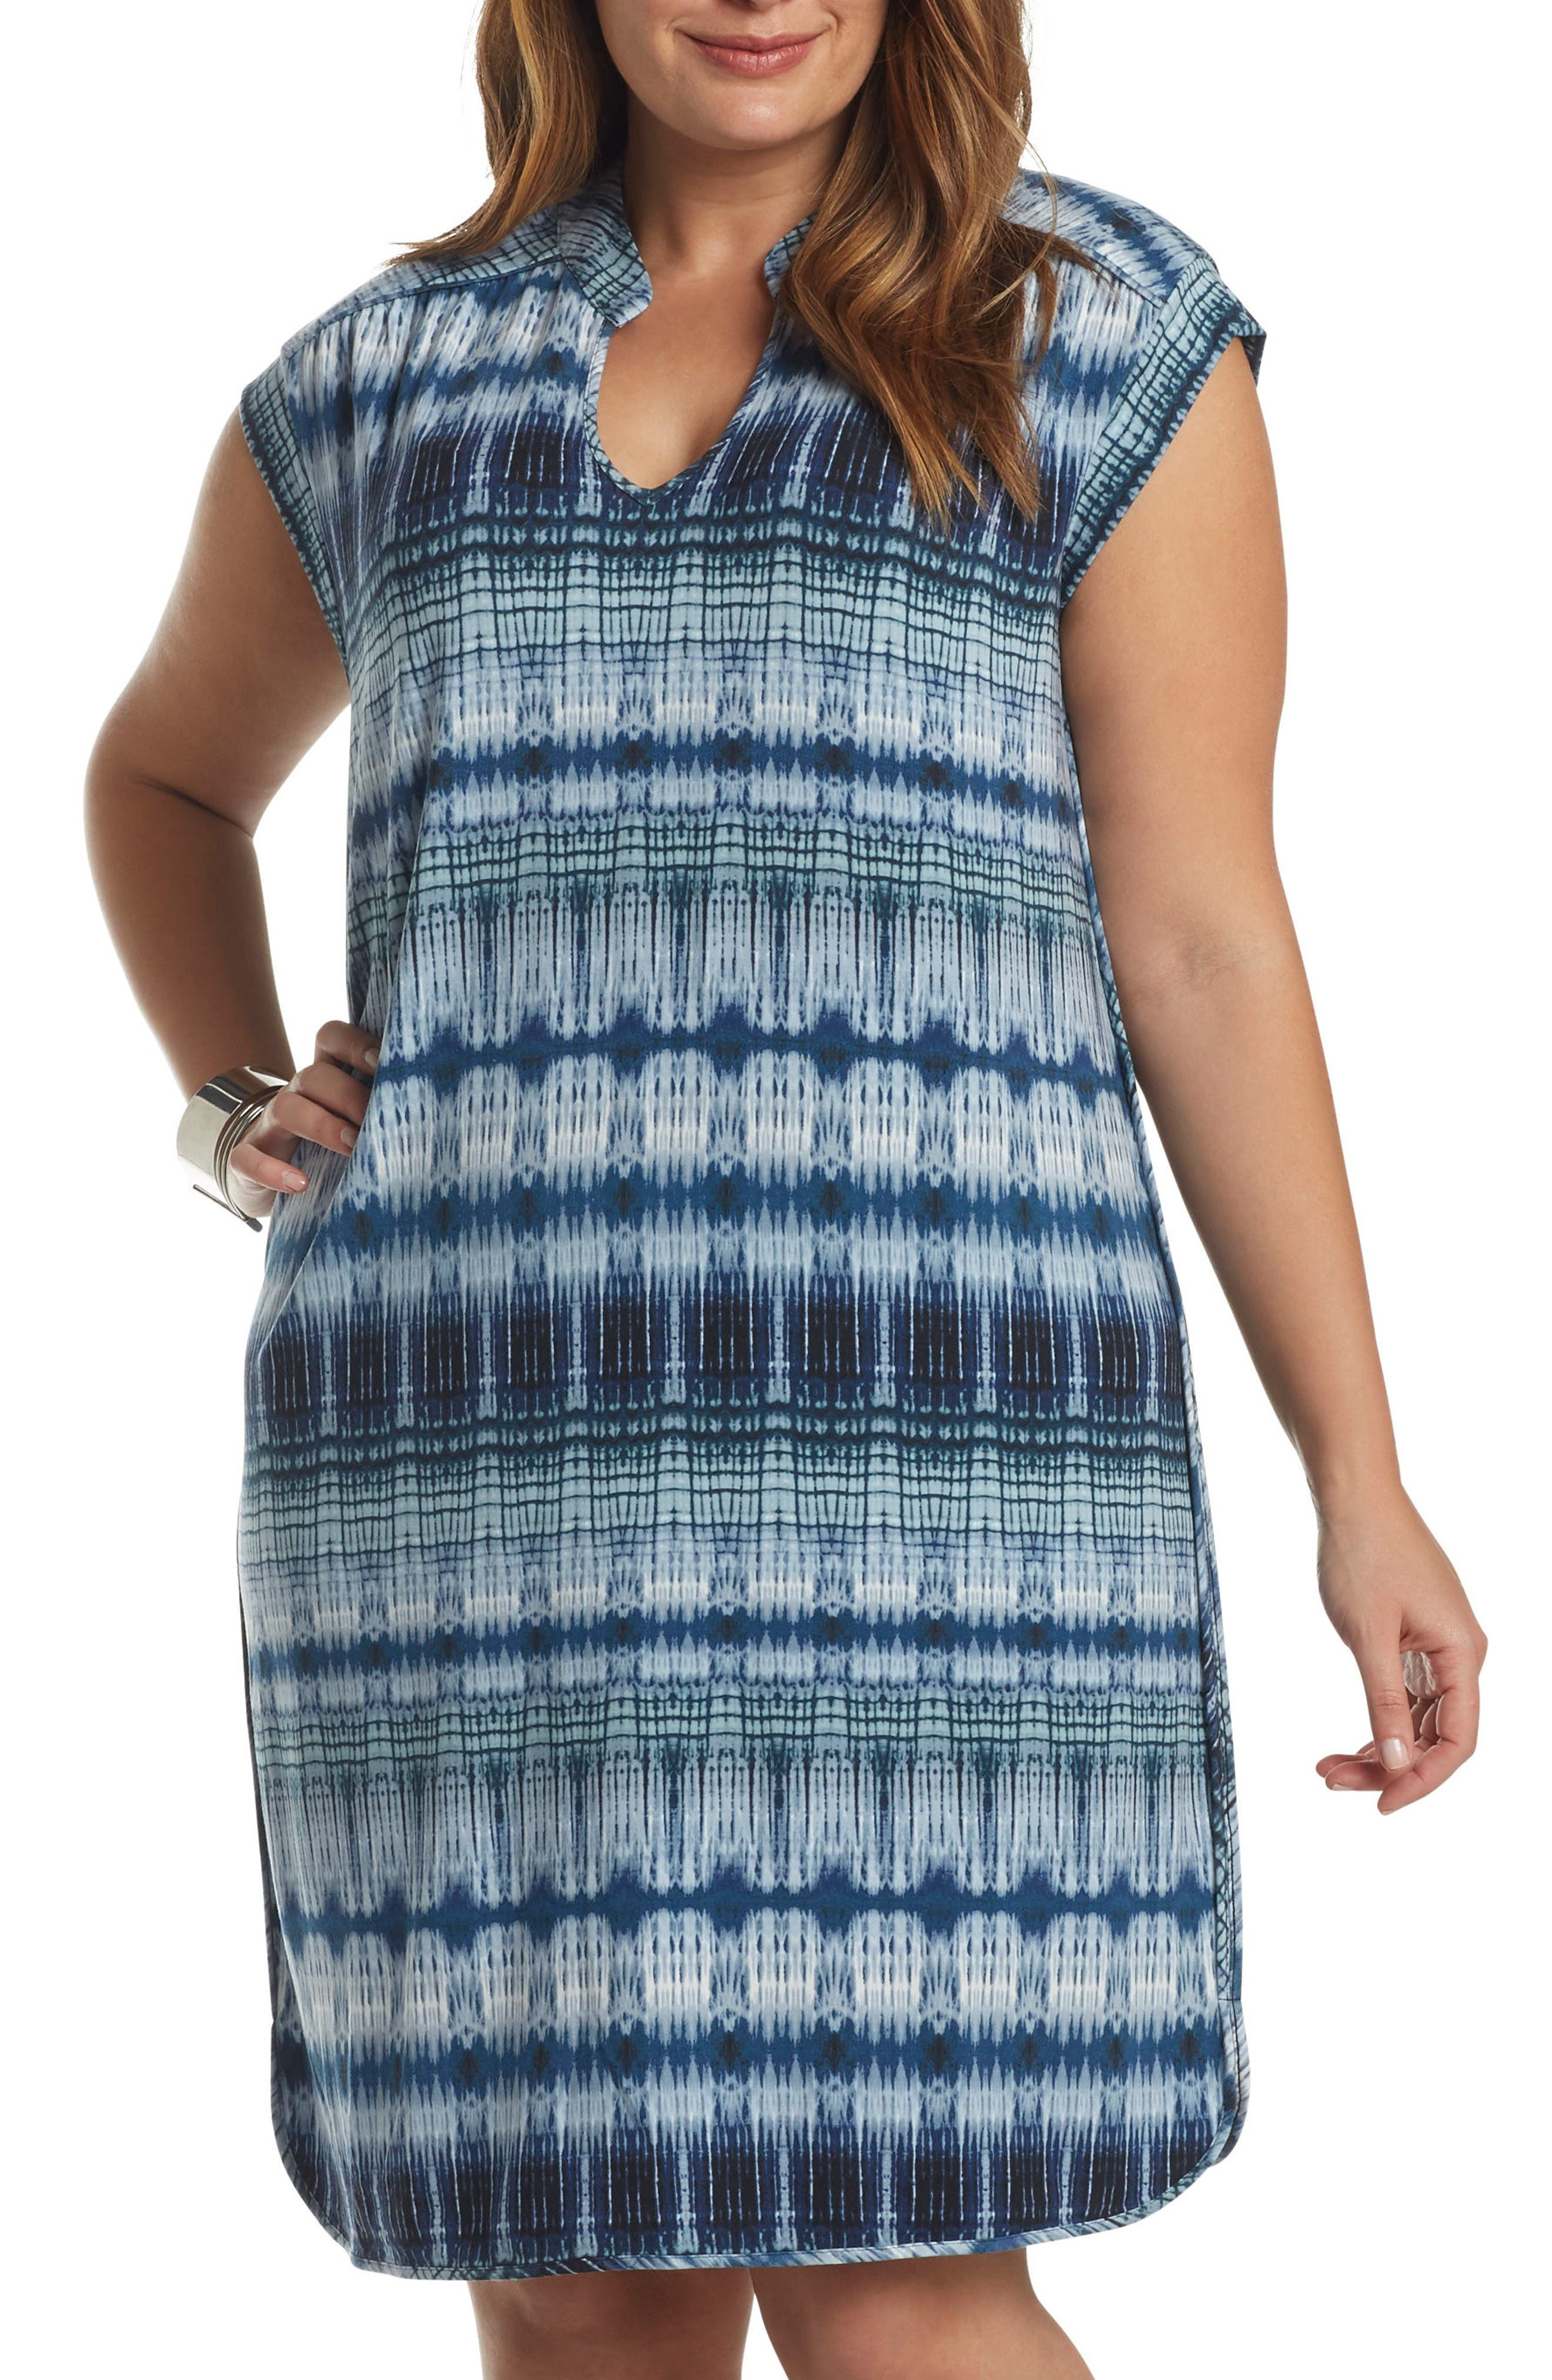 Tart 'Mellie' Split Neck Jersey Dress (Plus Size)